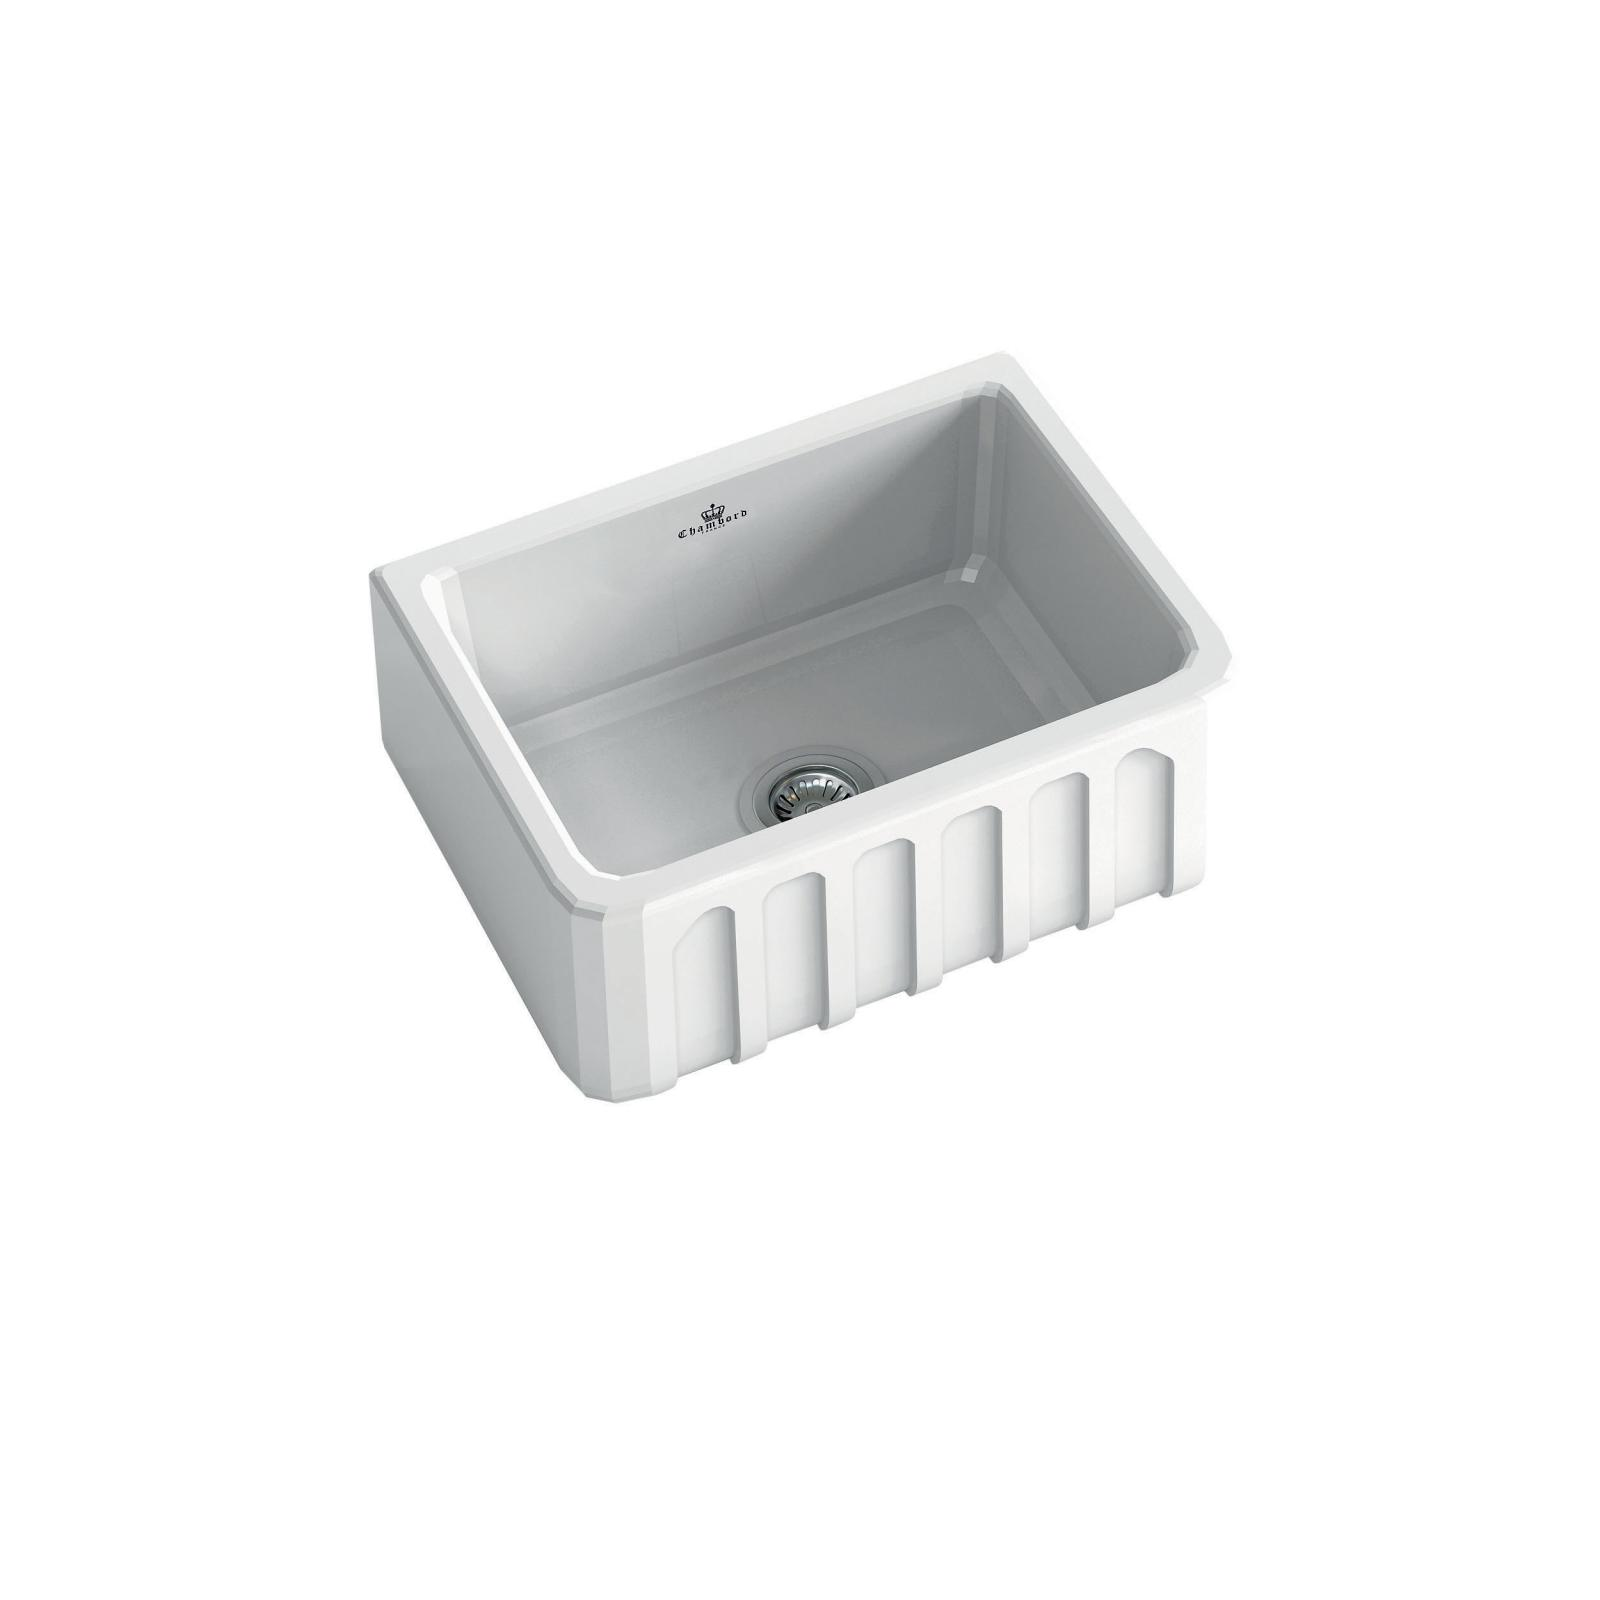 High-quality sink Louis I - single bowl, ceramic - ambience 3